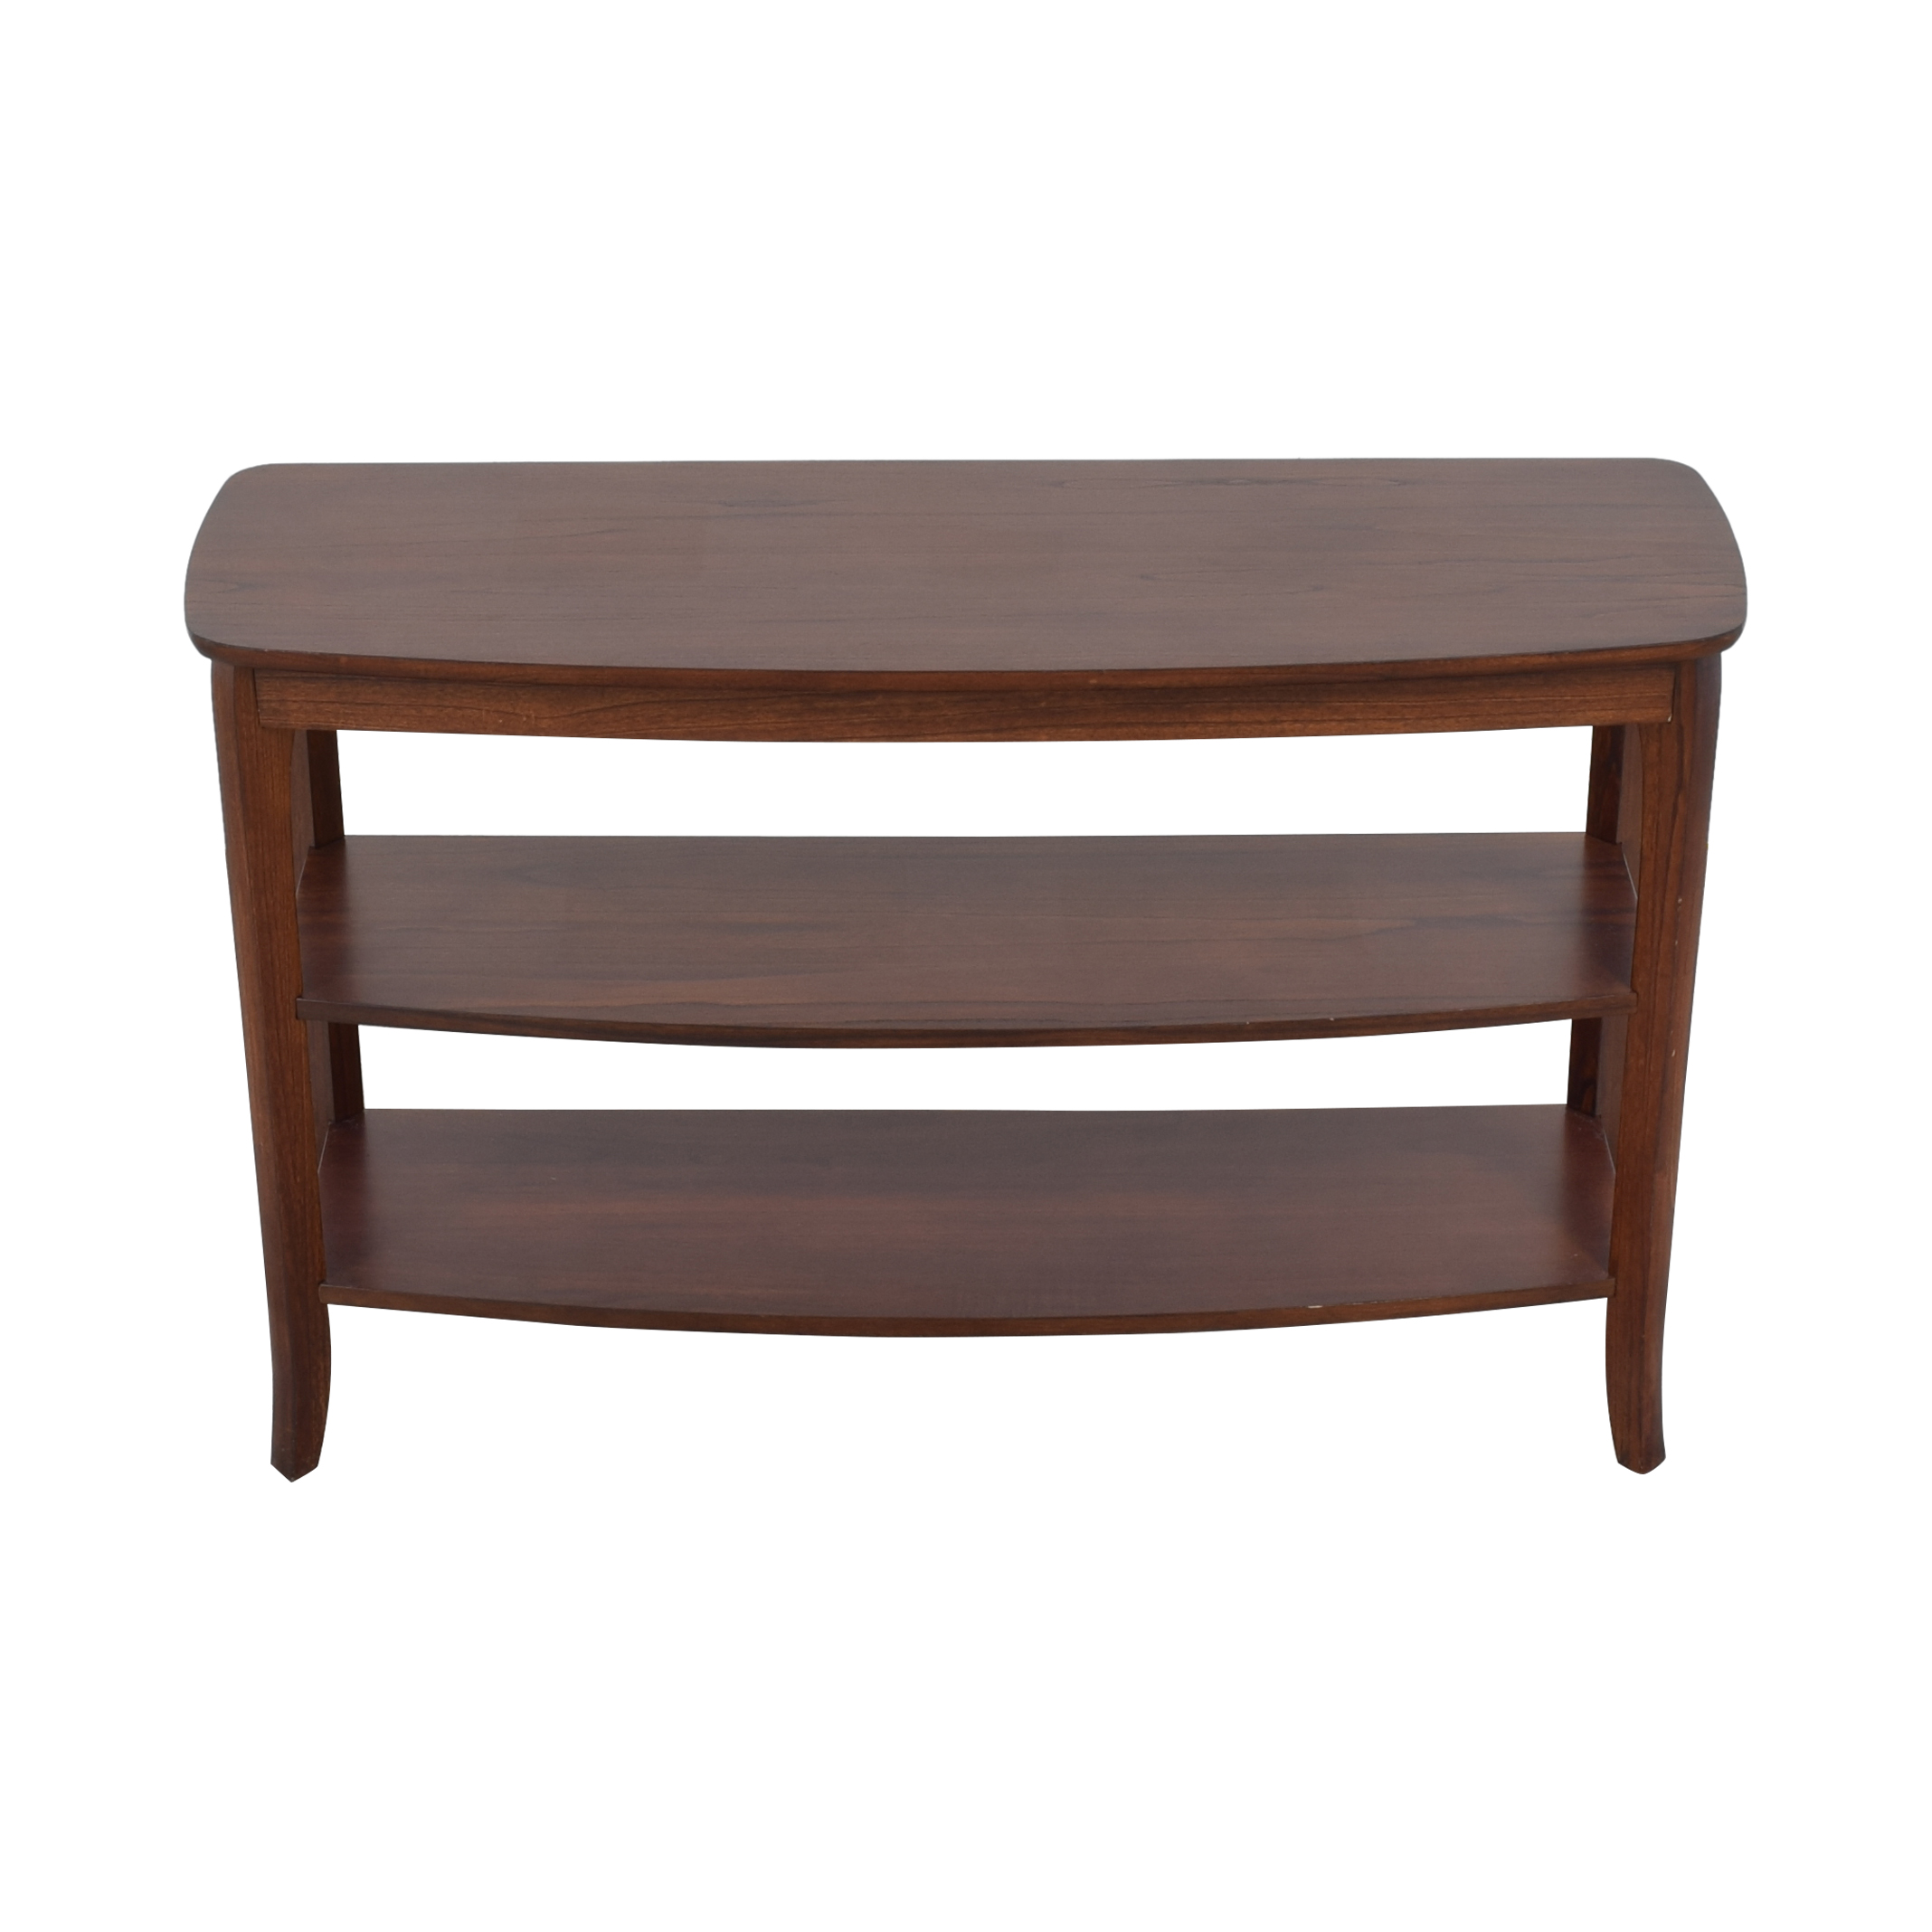 Pottery Barn Pottery Barn Tri-Level Console Table second hand